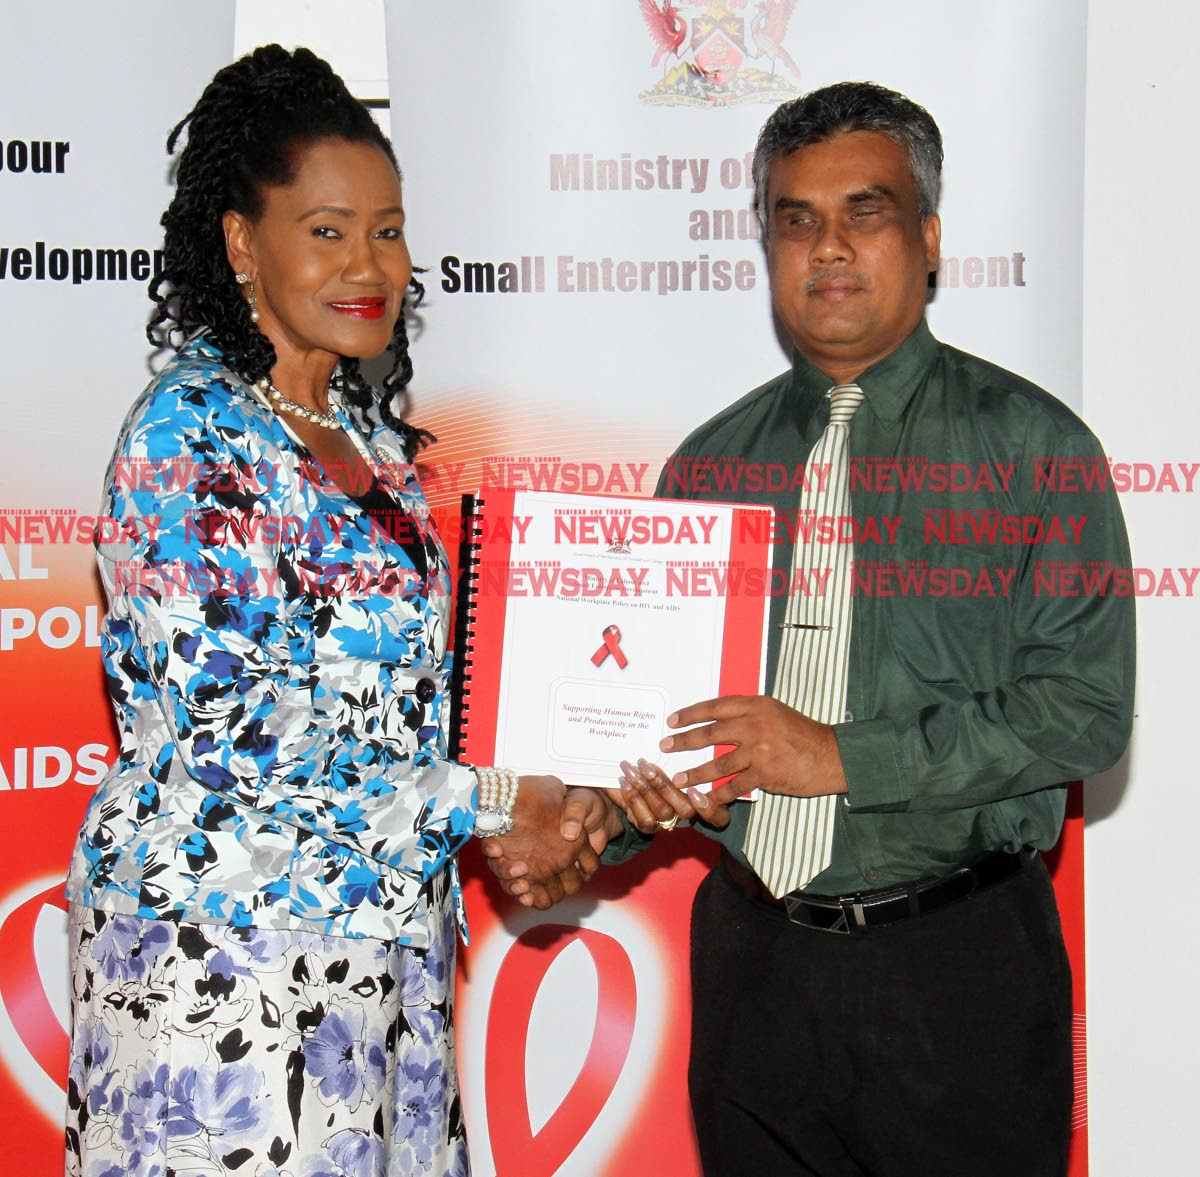 Labour and Small Enterprise Development Minister Jennifer Baptiste-Primus hands over copies of the National Workplace Policy on HIV and Aids, and an employee brochure document in braille, to Kenneth Surratt, executive officer of the Blind Welfare Association at the National Library, Port of Spain on Friday. PHOTO BY ANGELO MARCELLE